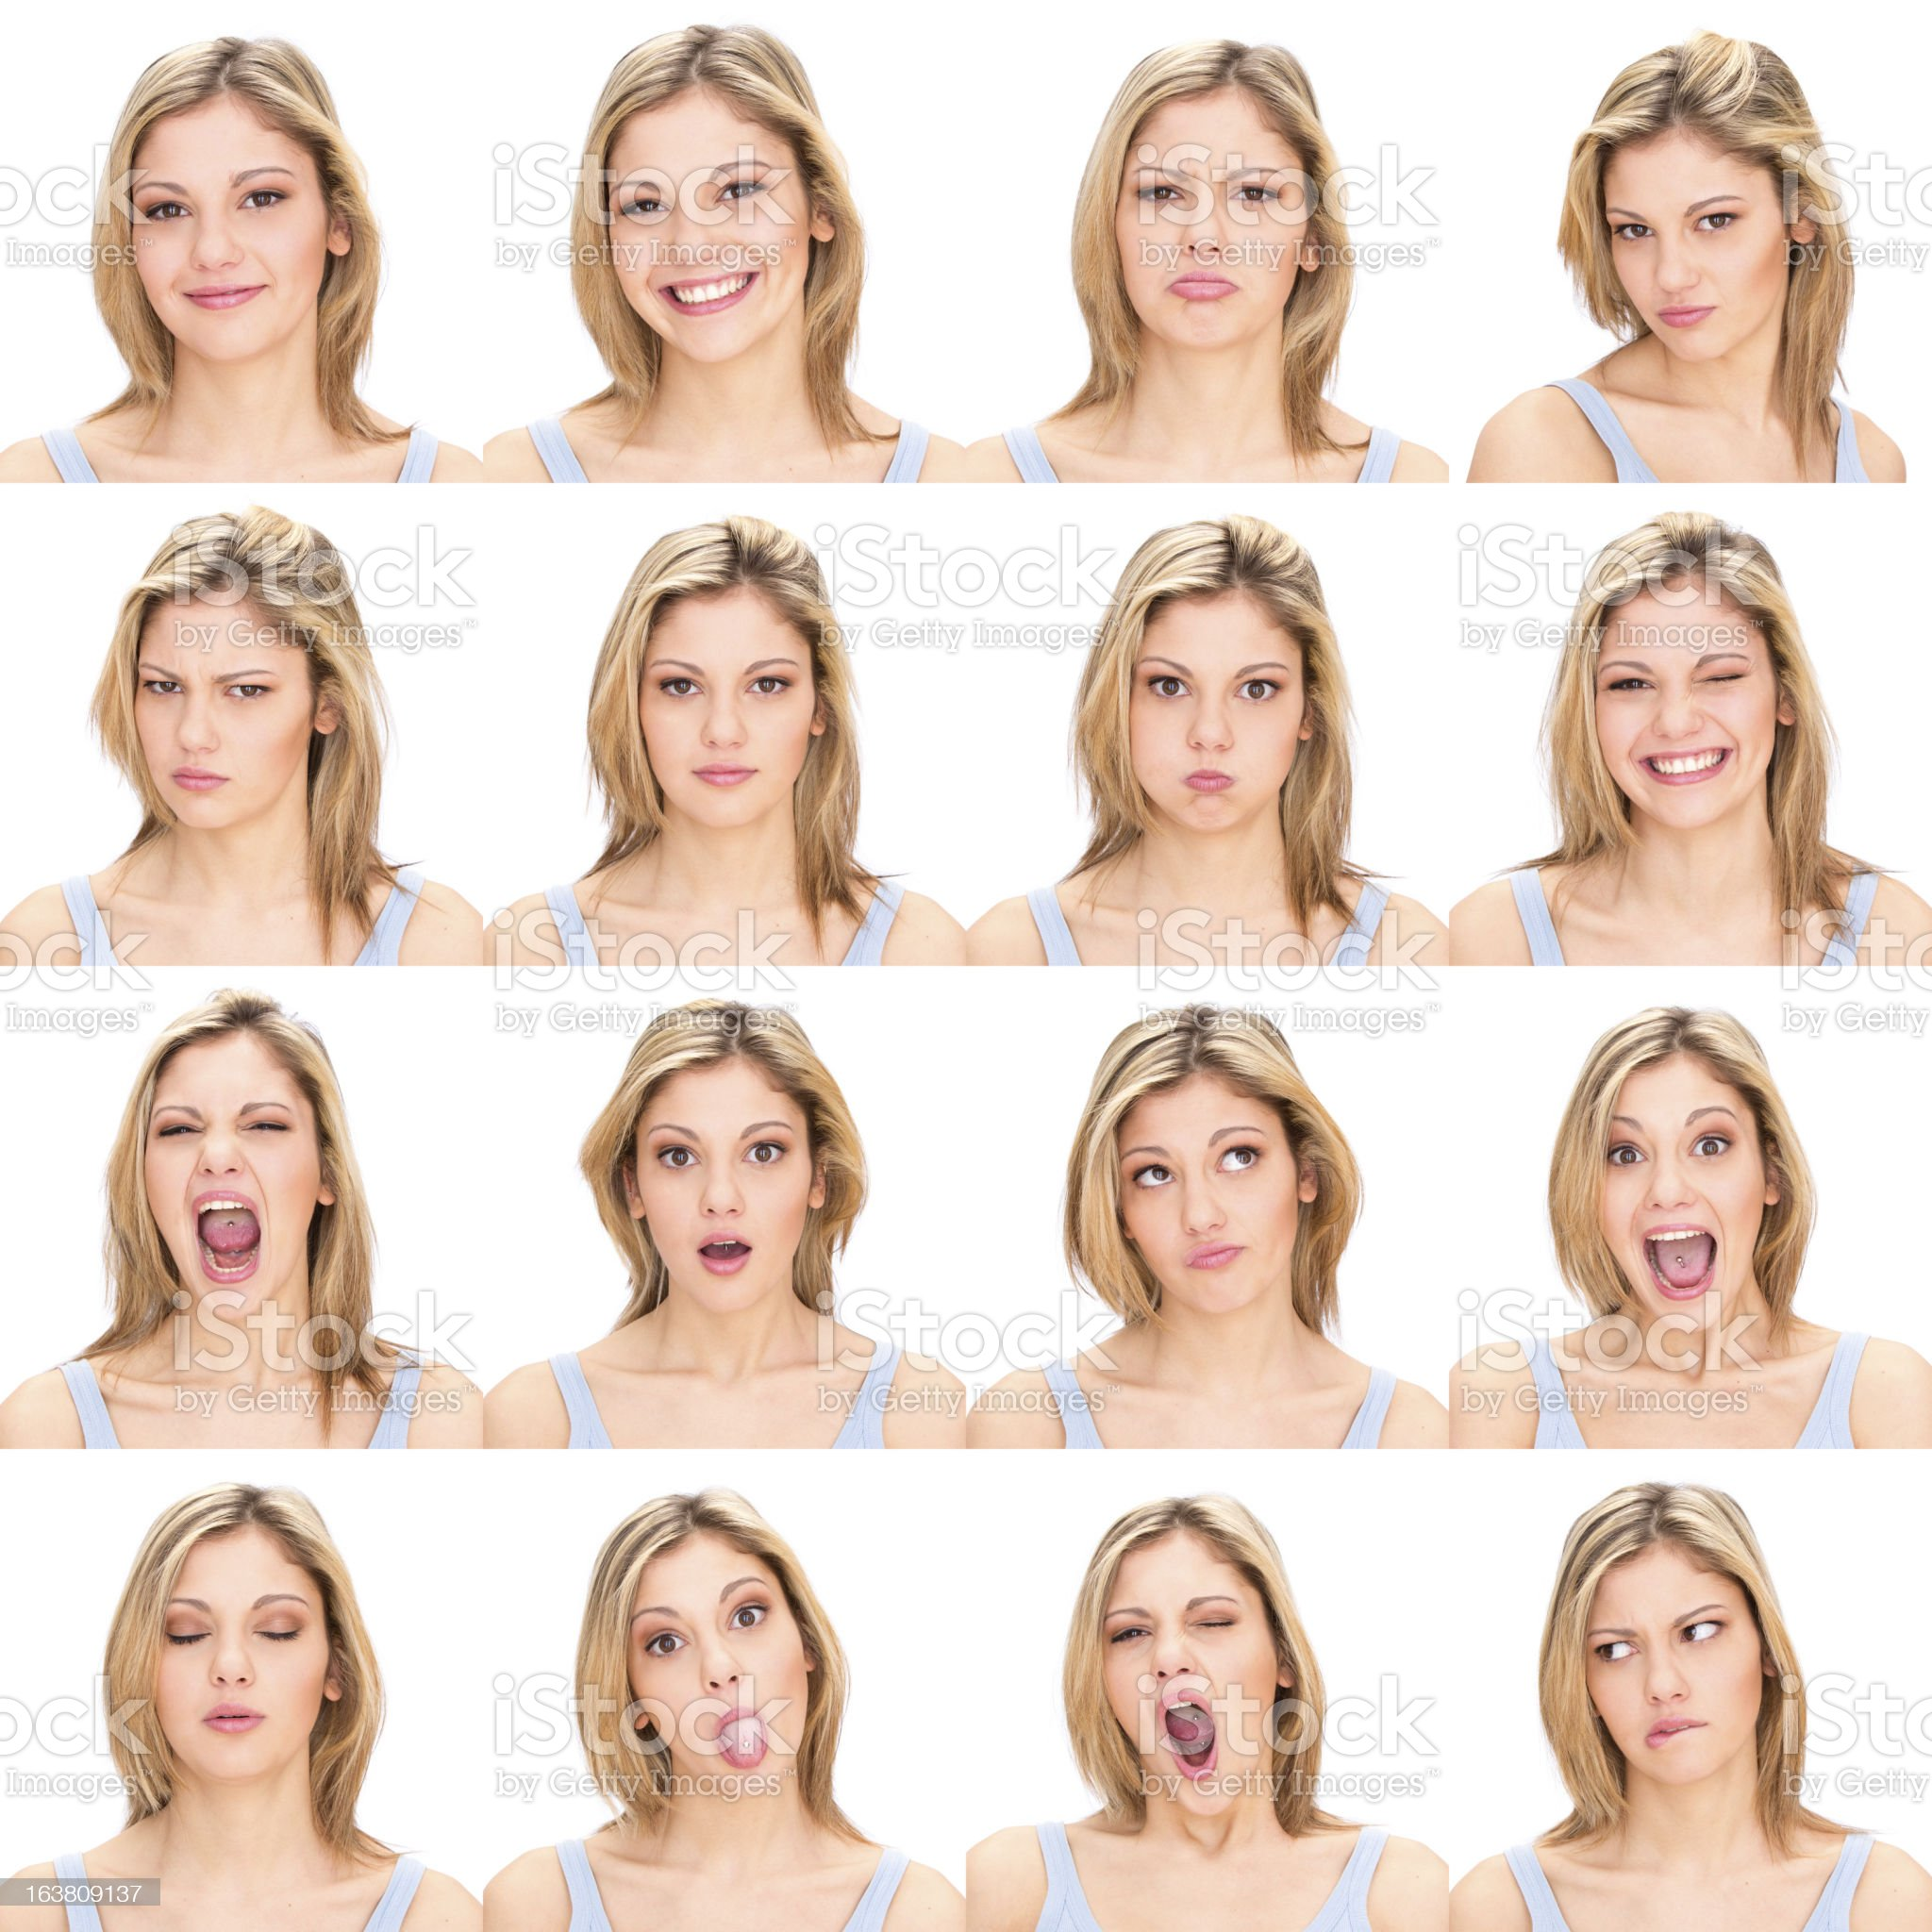 Woman with varying facial expressions royalty-free stock photo